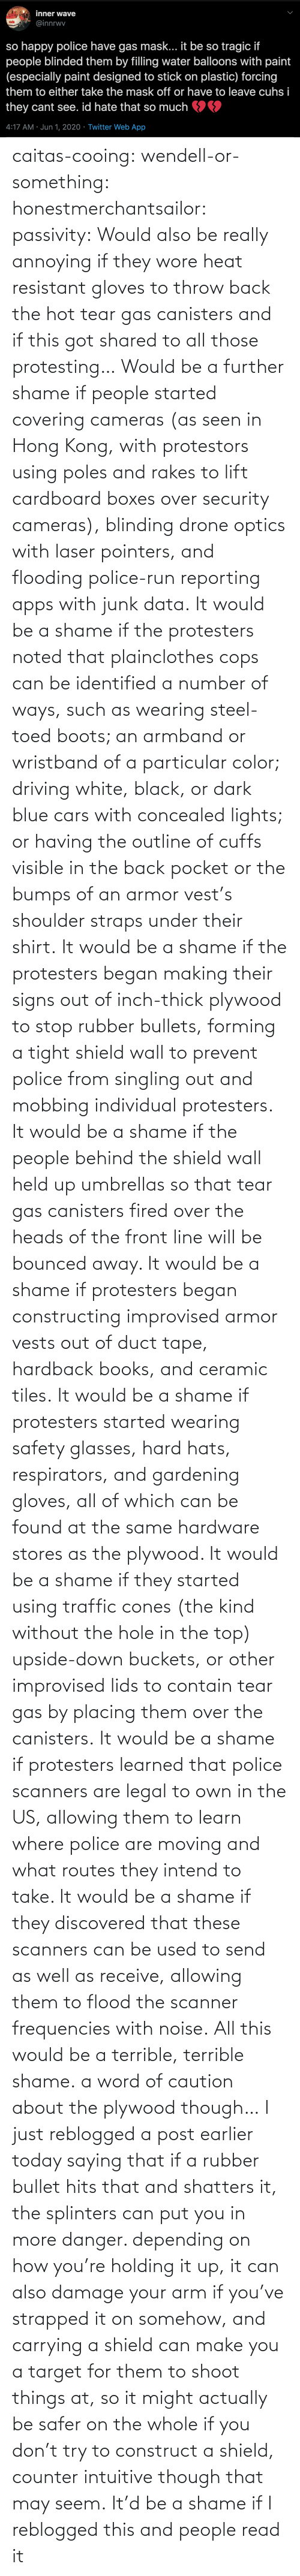 Behind: caitas-cooing:  wendell-or-something: honestmerchantsailor:  passivity: Would also be really annoying if they wore heat resistant gloves to throw back the hot tear gas canisters and if this got shared to all those protesting… Would be a further shame if people started covering cameras (as seen in Hong Kong, with protestors using poles and rakes to lift cardboard boxes over security cameras), blinding drone optics with laser pointers, and flooding police-run reporting apps with junk data. It would be a shame if the protesters noted that plainclothes cops can be identified a number of ways, such as wearing steel-toed boots; an armband or wristband of a particular color; driving white, black, or dark blue cars with concealed lights; or having the outline of cuffs visible in the back pocket or the bumps of an armor vest's shoulder straps under their shirt. It would be a shame if the protesters began making their signs out of inch-thick plywood to stop rubber bullets, forming a tight shield wall to prevent police from singling out and mobbing individual protesters. It would be a shame if the people behind the shield wall held up umbrellas so that tear gas canisters fired over the heads of the front line will be bounced away. It would be a shame if protesters began constructing improvised armor vests out of duct tape, hardback books, and ceramic tiles. It would be a shame if protesters started wearing safety glasses, hard hats, respirators, and gardening gloves, all of which can be found at the same hardware stores as the plywood. It would be a shame if they started using traffic cones (the kind without the hole in the top) upside-down buckets, or other improvised lids to contain tear gas by placing them over the canisters. It would be a shame if protesters learned that police scanners are legal to own in the US, allowing them to learn where police are moving and what routes they intend to take. It would be a shame if they discovered that these scanners can be used to send as well as receive, allowing them to flood the scanner frequencies with noise. All this would be a terrible, terrible shame.    a word of caution about the plywood though… I just reblogged a post earlier today saying that if a rubber bullet hits that and shatters it, the splinters can put you in more danger. depending on how you're holding it up, it can also damage your arm if you've strapped it on somehow, and carrying a shield can make you a target for them to shoot things at, so it might actually be safer on the whole if you don't try to construct a shield, counter intuitive though that may seem.    It'd be a shame if I reblogged this and people read it